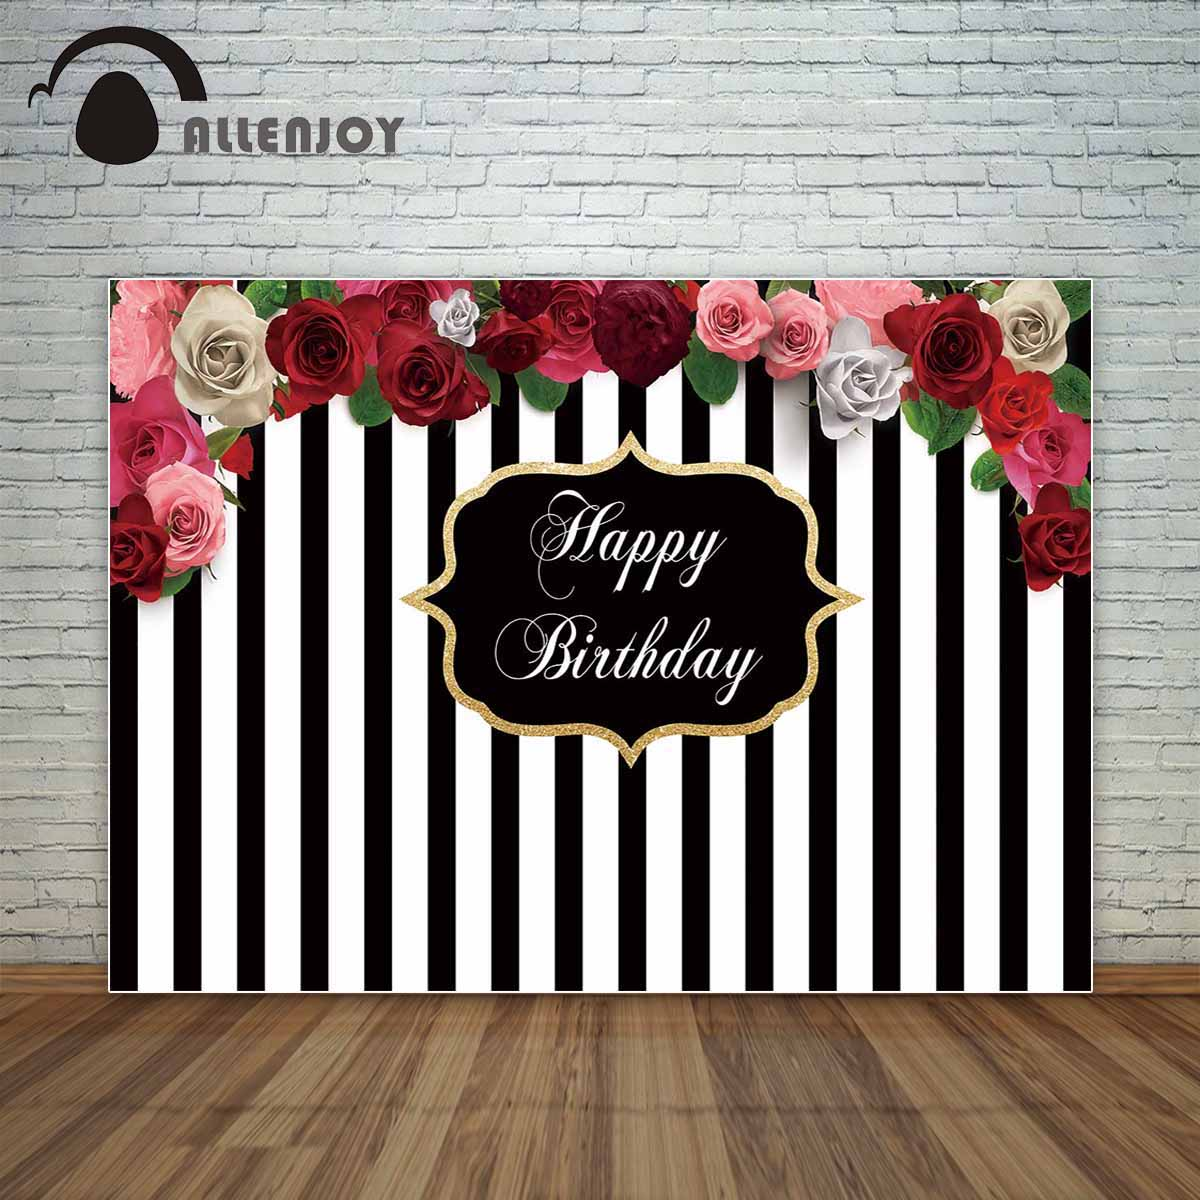 Allenjoy Black and white stripes backdrop with beautiful flowers birthday party custom backdrop photocall for a photo shoot fond стоимость